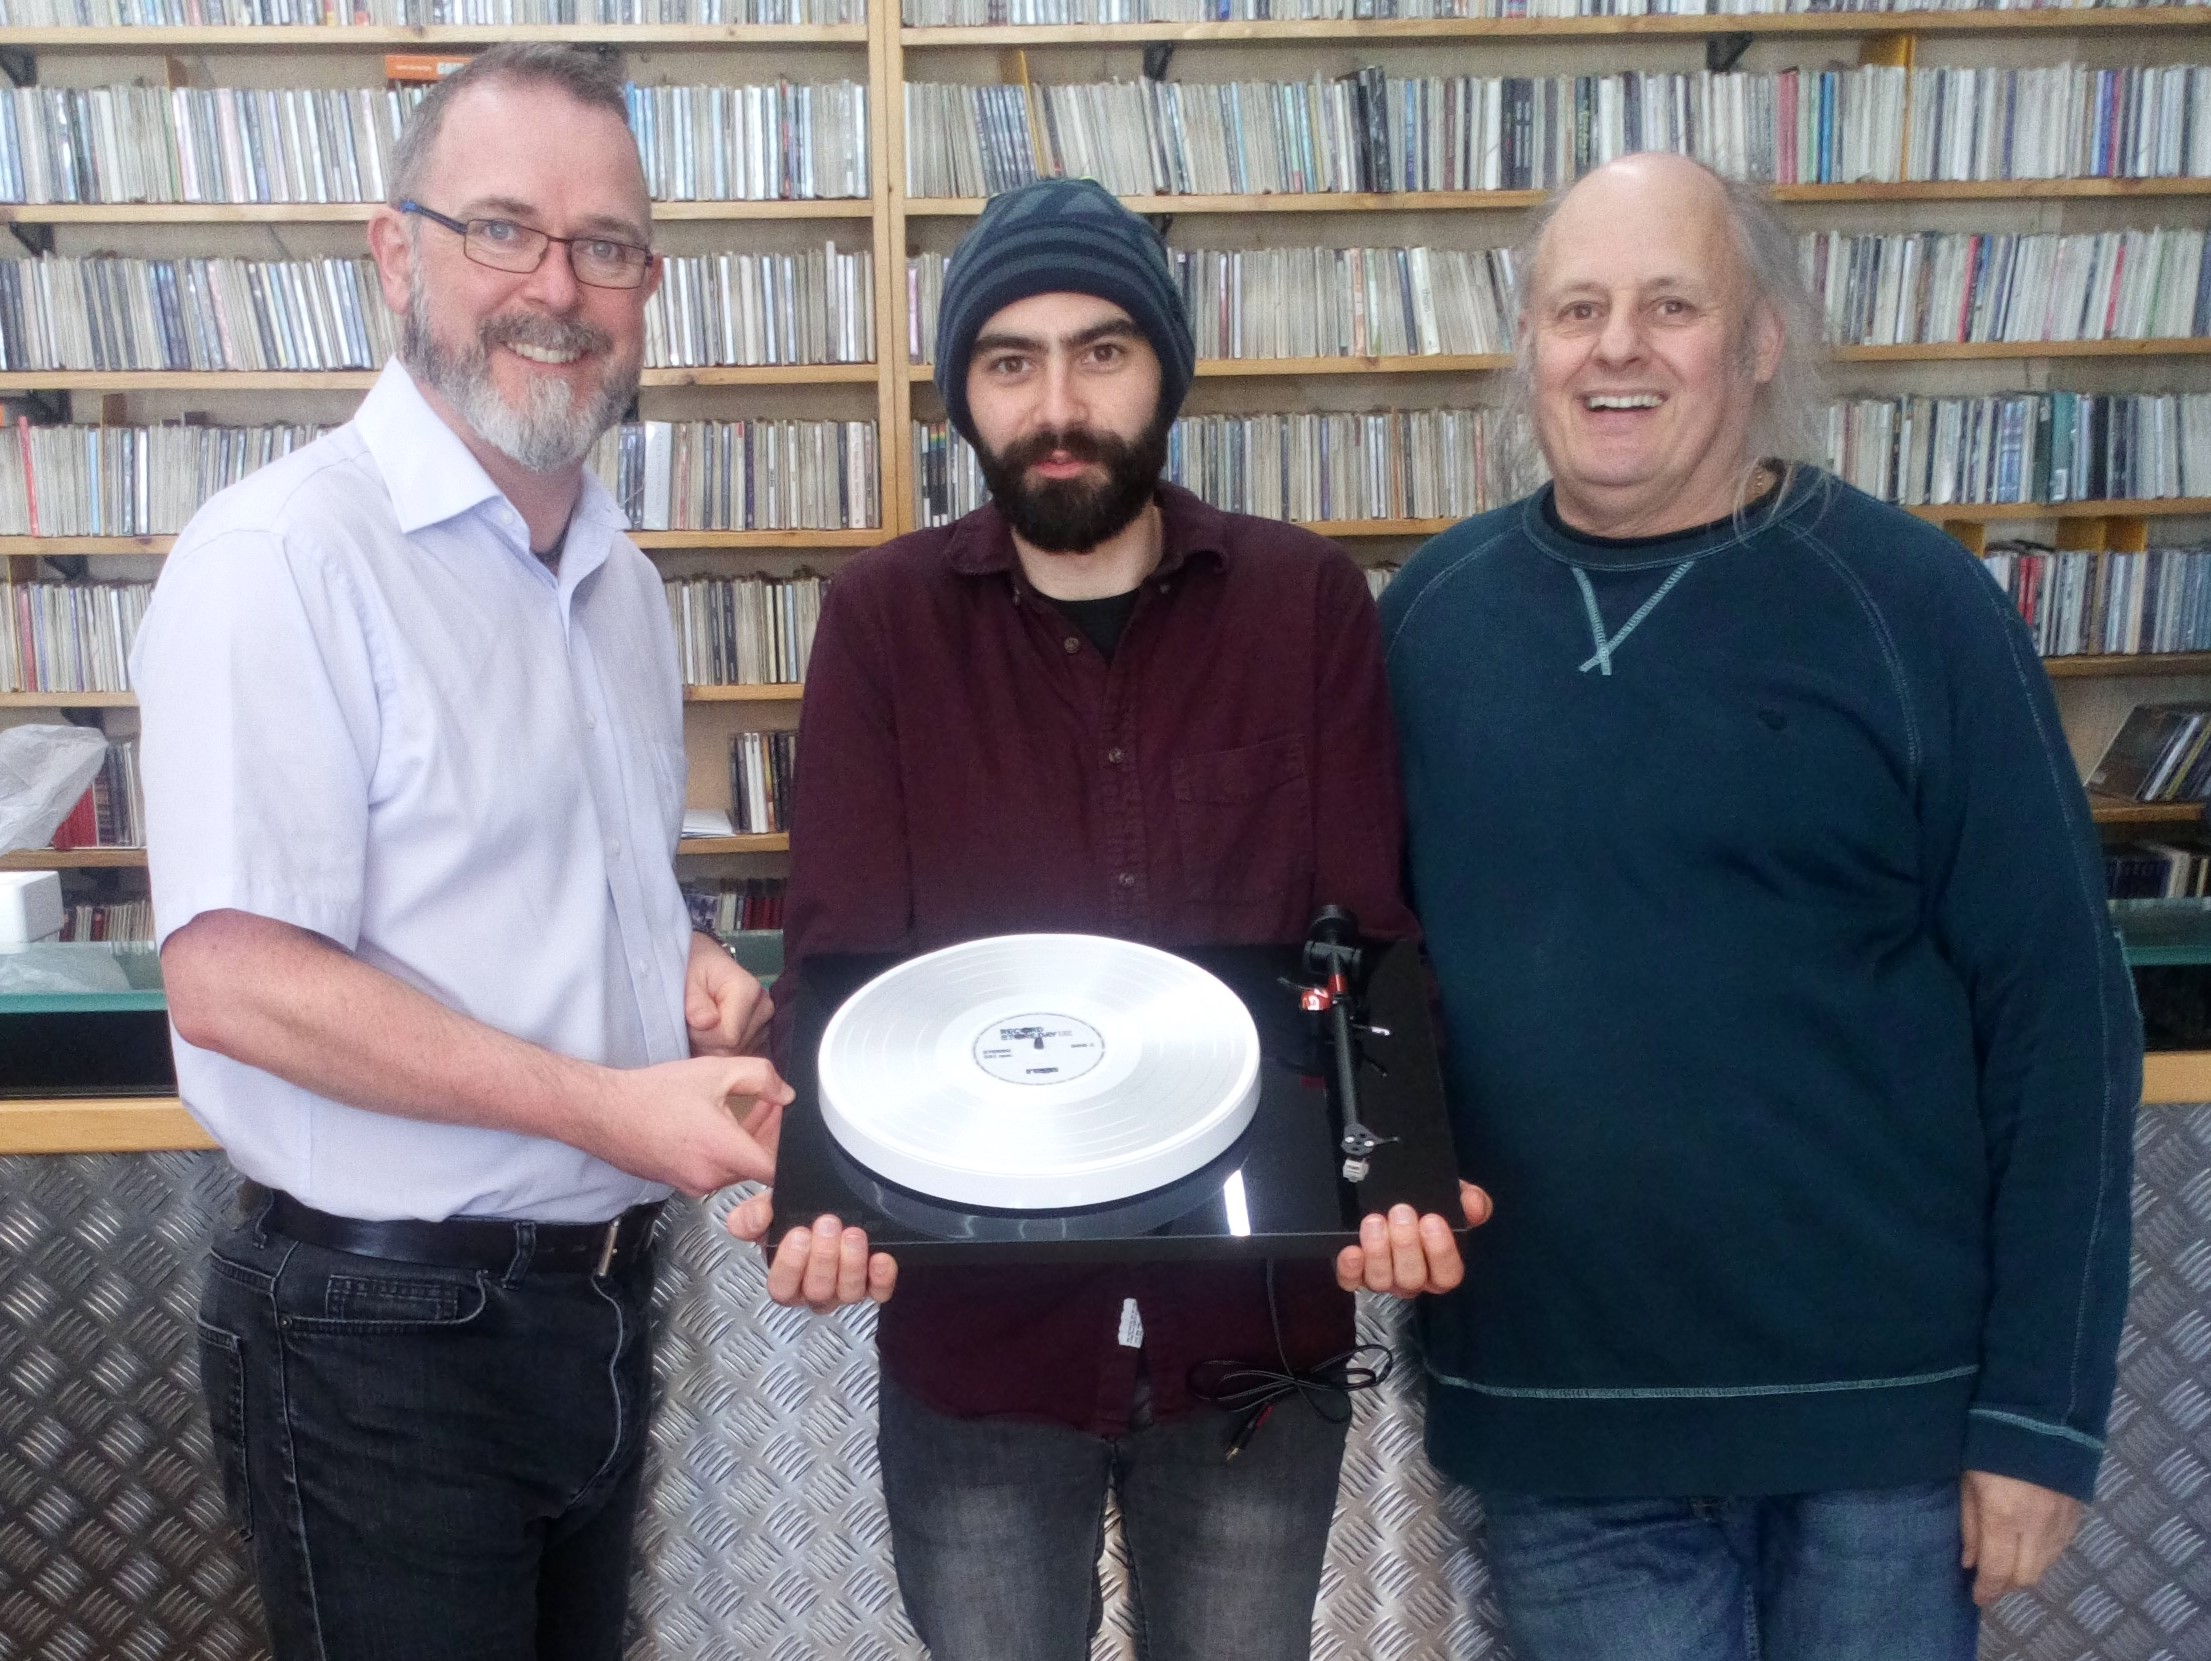 Nic Forbes on the left, our lucky winner David Mayes and Christos on the right.